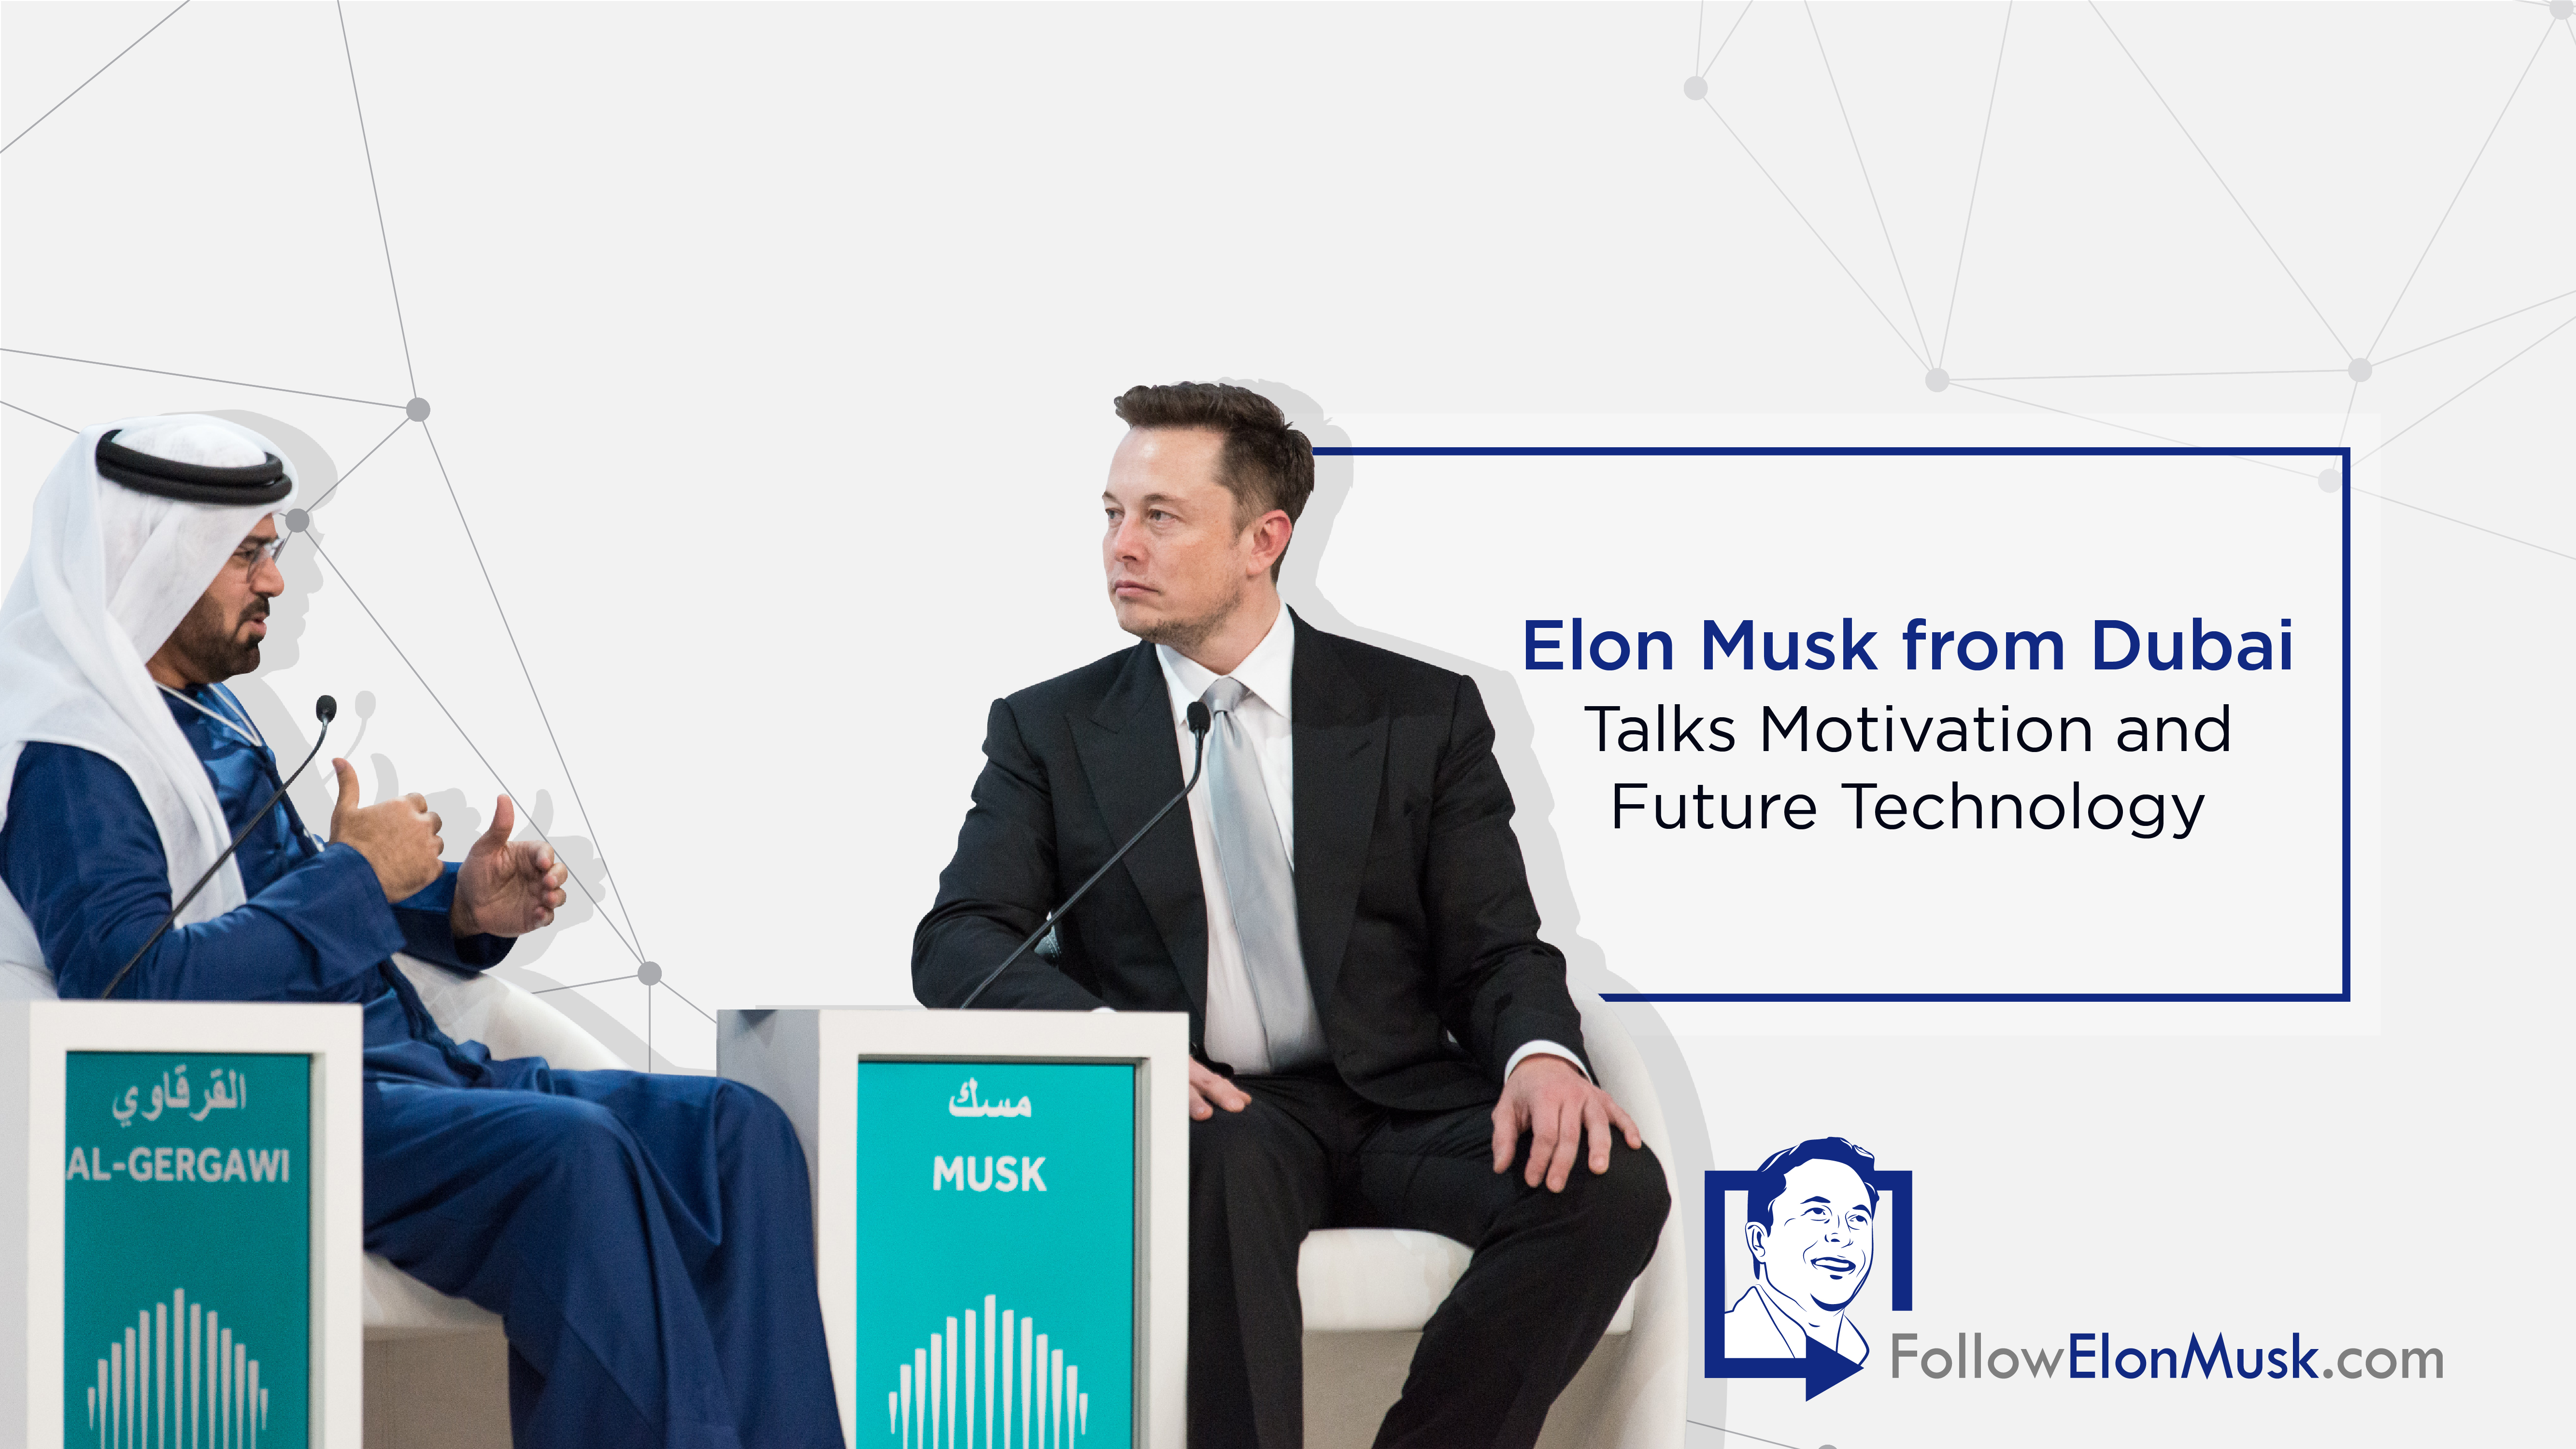 Elon Musk from Dubai Talks Motivation and Future Technology